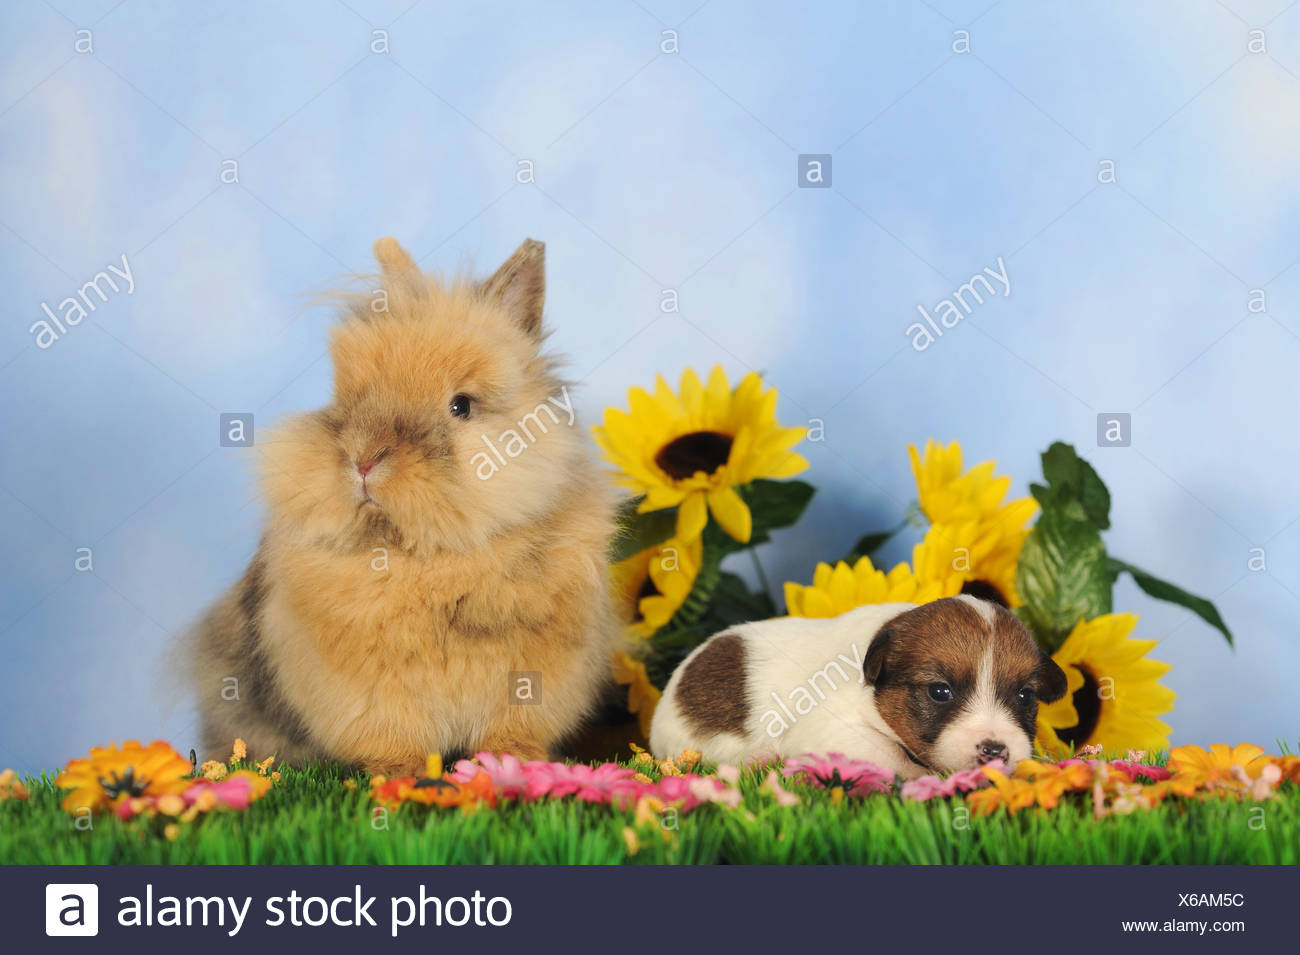 Jack Russell Terrier puppy, 2 weeks, and a dwarf rabbit - Stock Image